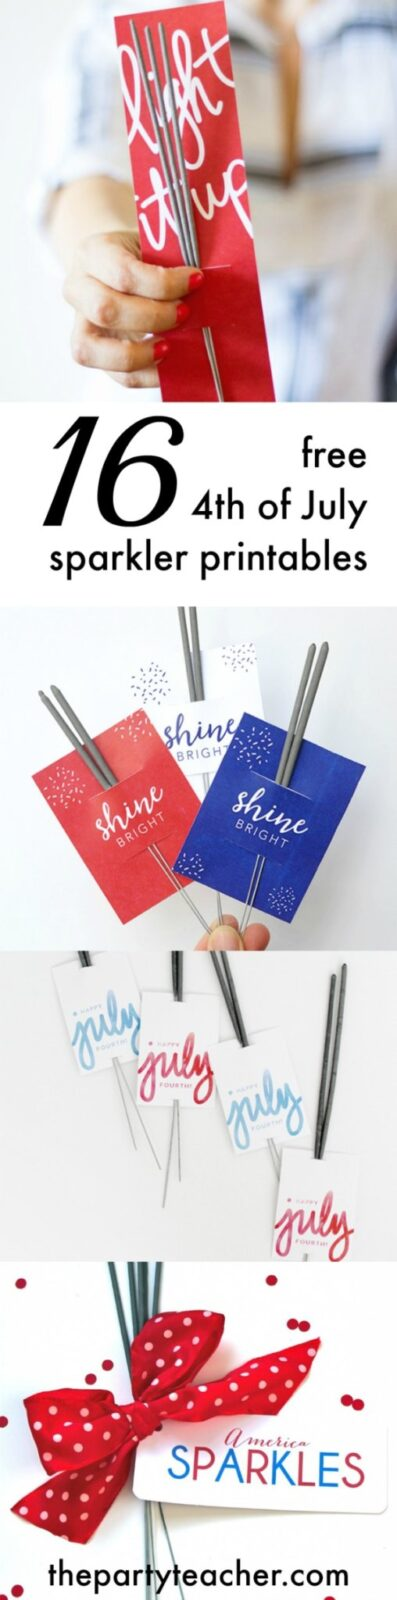 16 free 4th of July sparkler printables - The Party Teacher